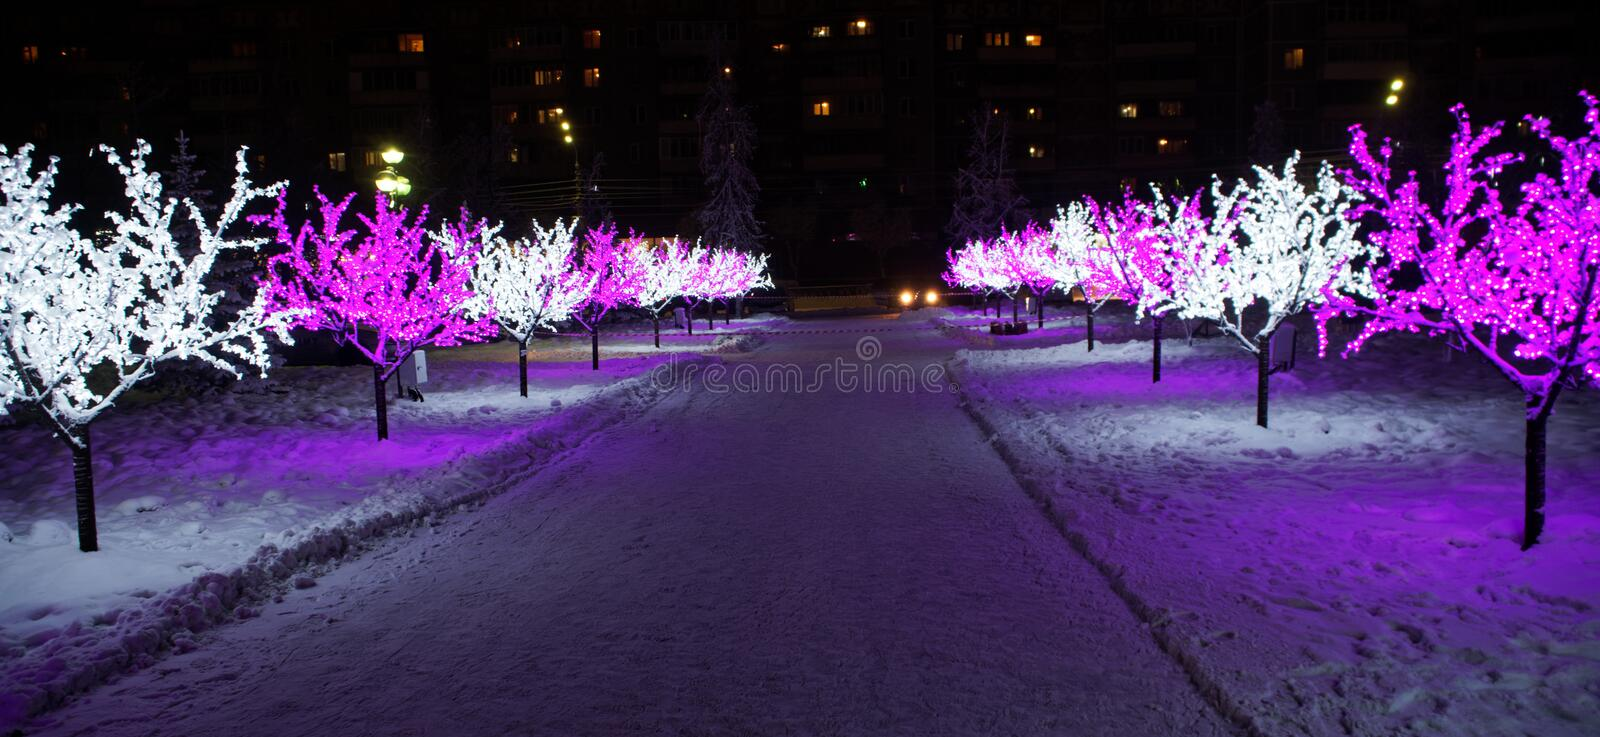 Festive LED lights on the branches of trees in the winter night city. Winter holidays royalty free stock photo